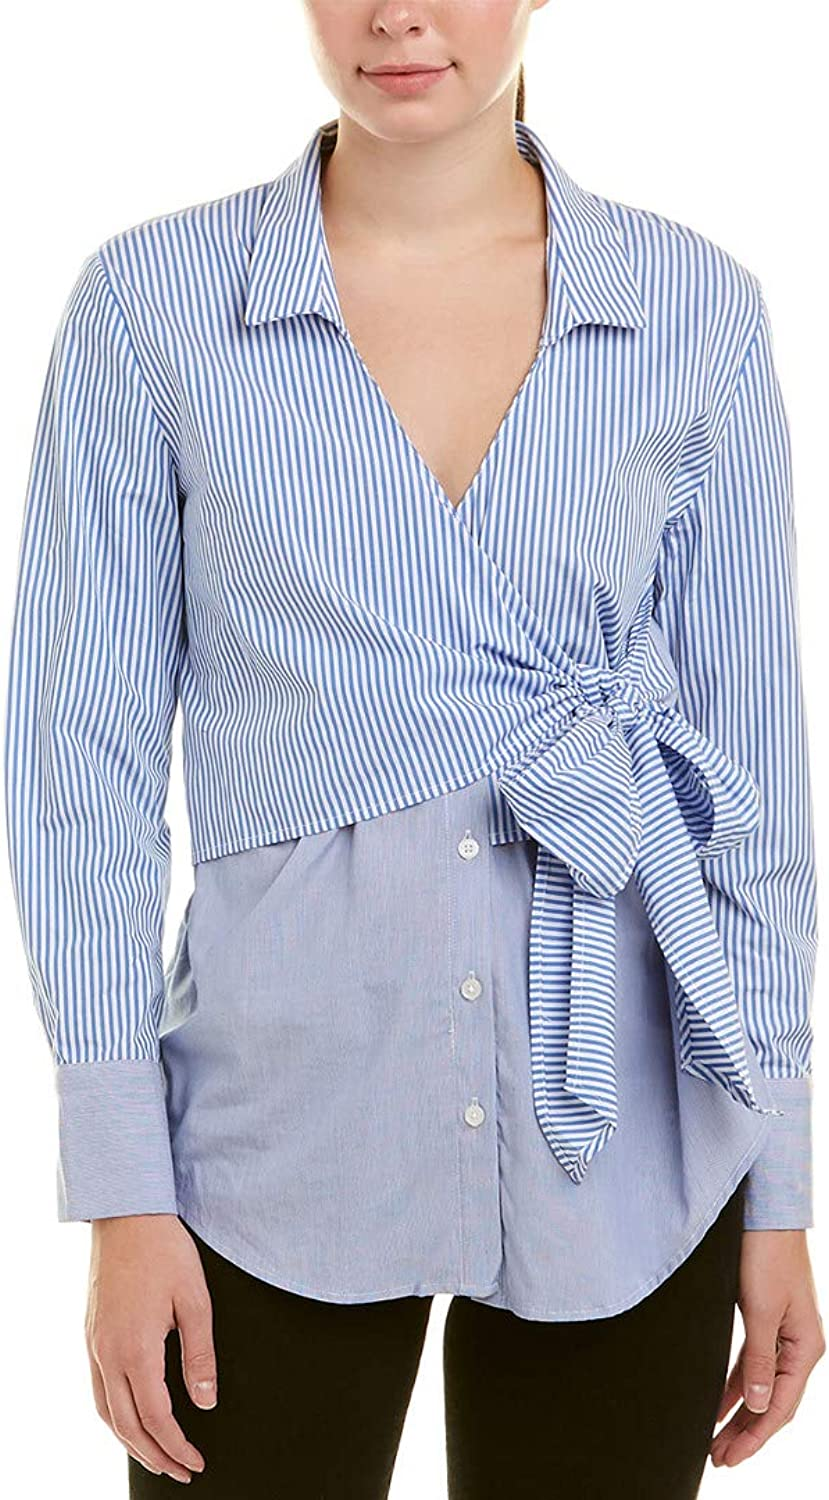 Bardot Womens Wrap Tie Shirt Dress Shirt